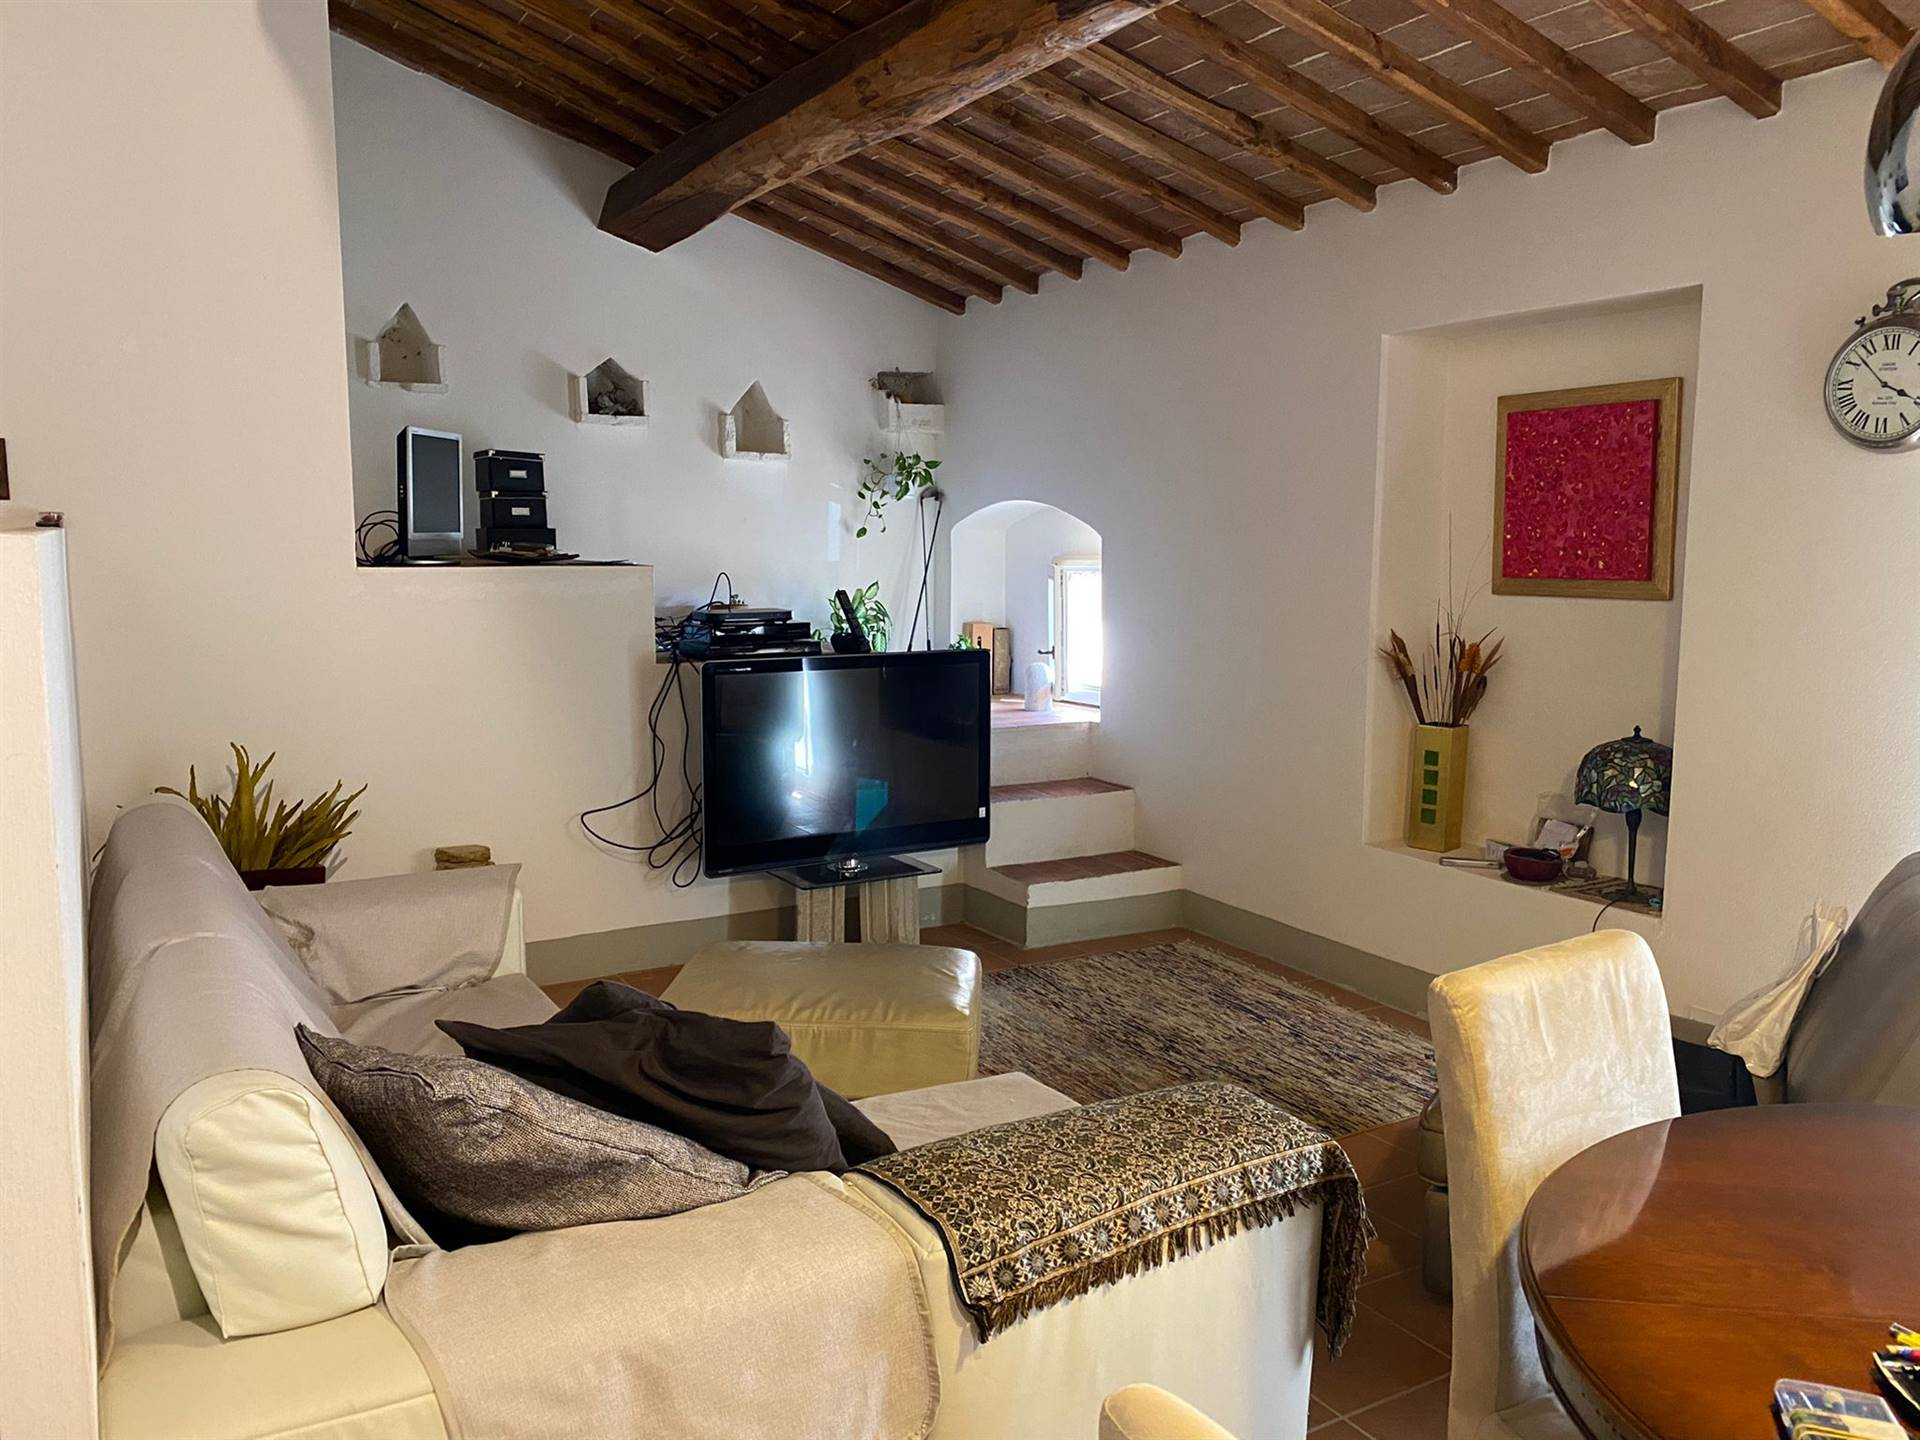 VICO ALTO, SIENA, Apartment for rent of 100 Sq. mt., Restored, Heating Individual heating system, Energetic class: E, placed at 2°, composed by: 4 Rooms, Separate kitchen, , 2 Bedrooms, 2 Bathrooms,